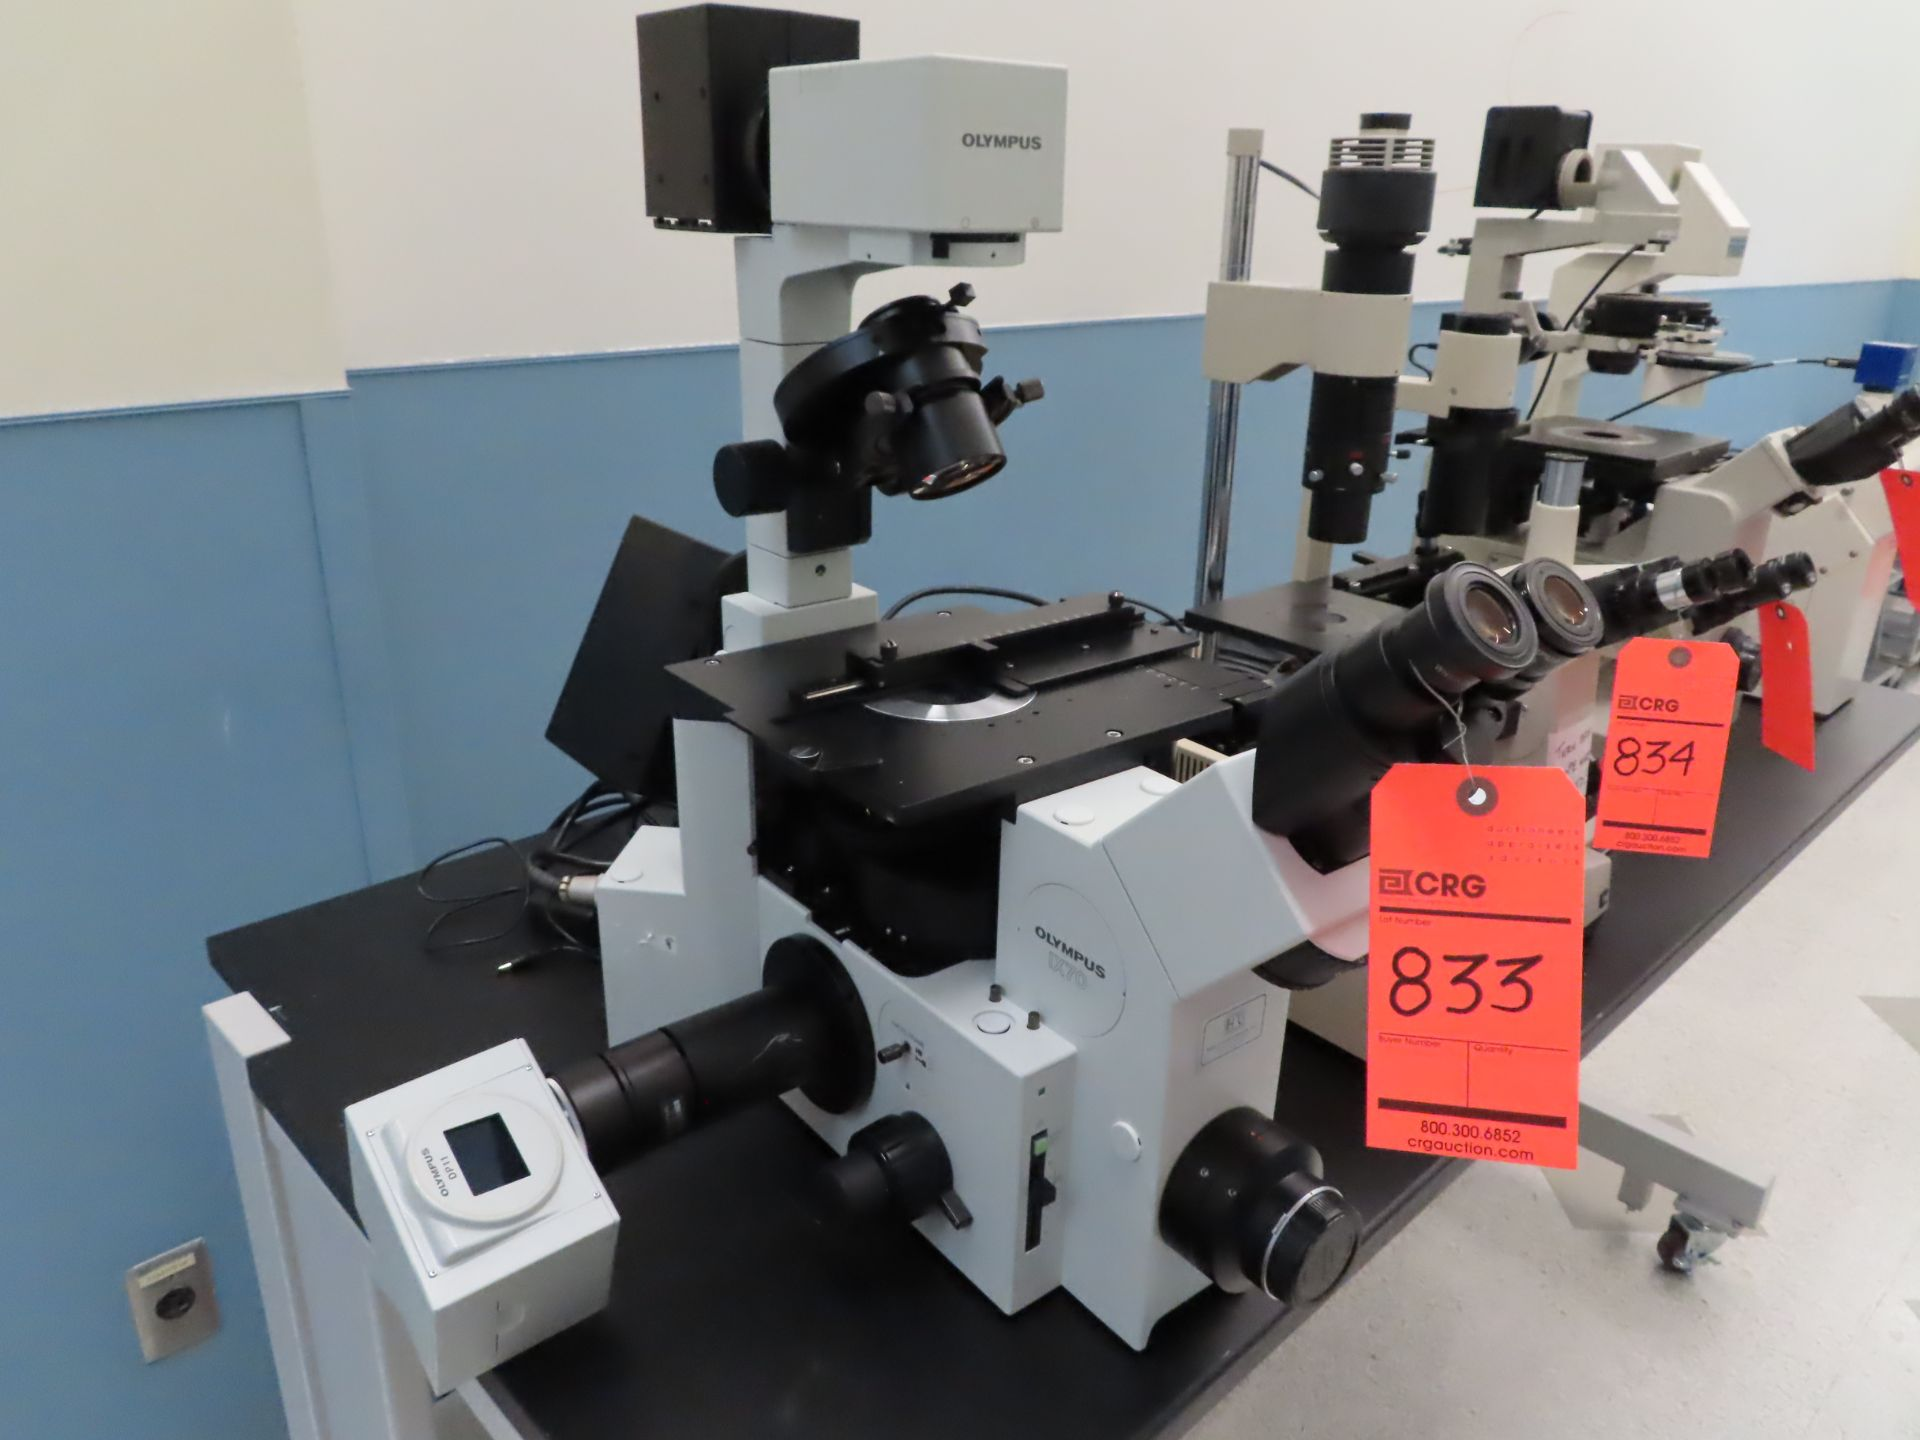 Lot 833 - Olympus IX50 inverted system microscope, s/n AX7066, with light source and Olympus DP11, located B